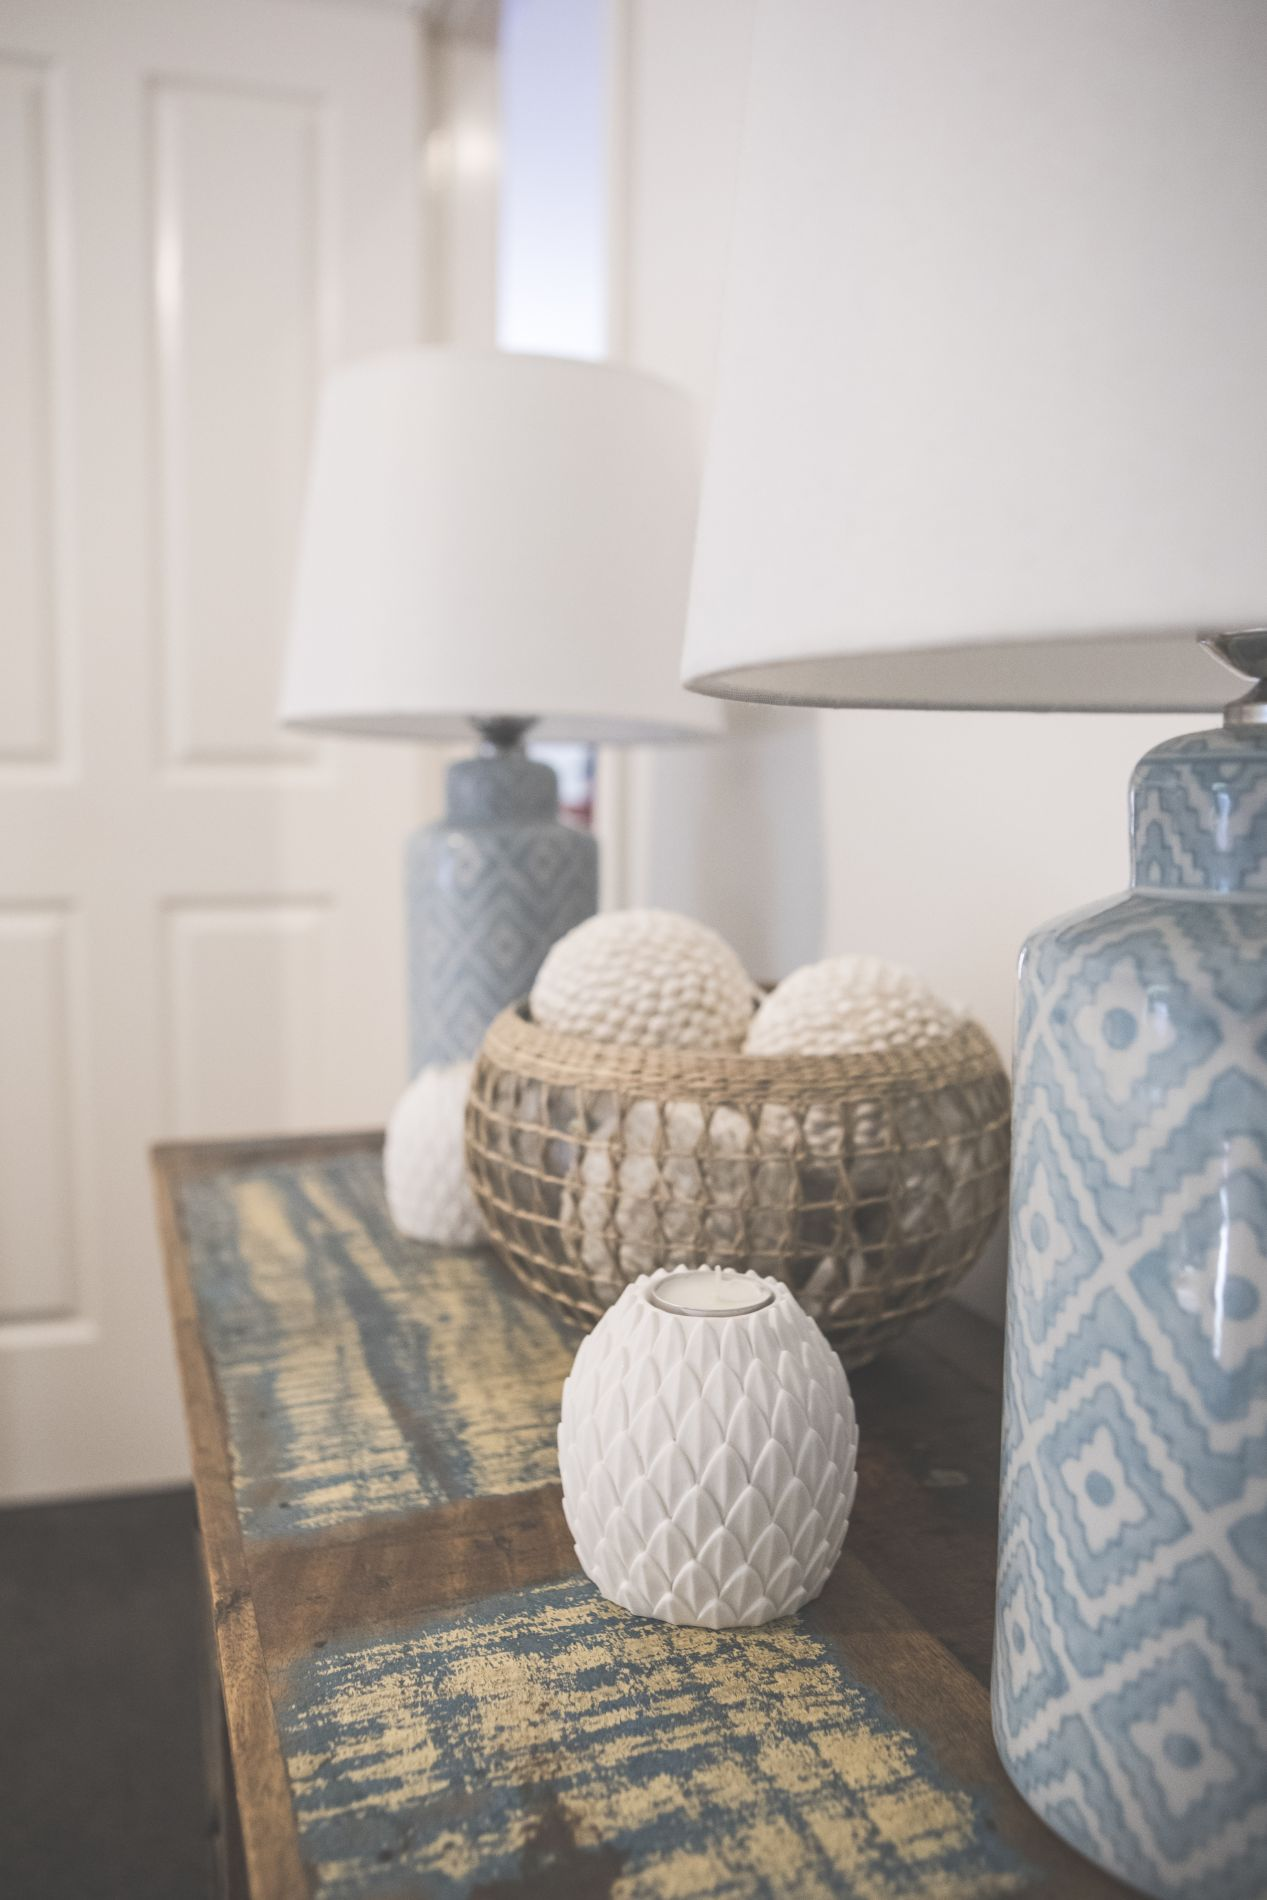 Blue patterned ceramic lamps with basket of decorative homewares on distressed wood console